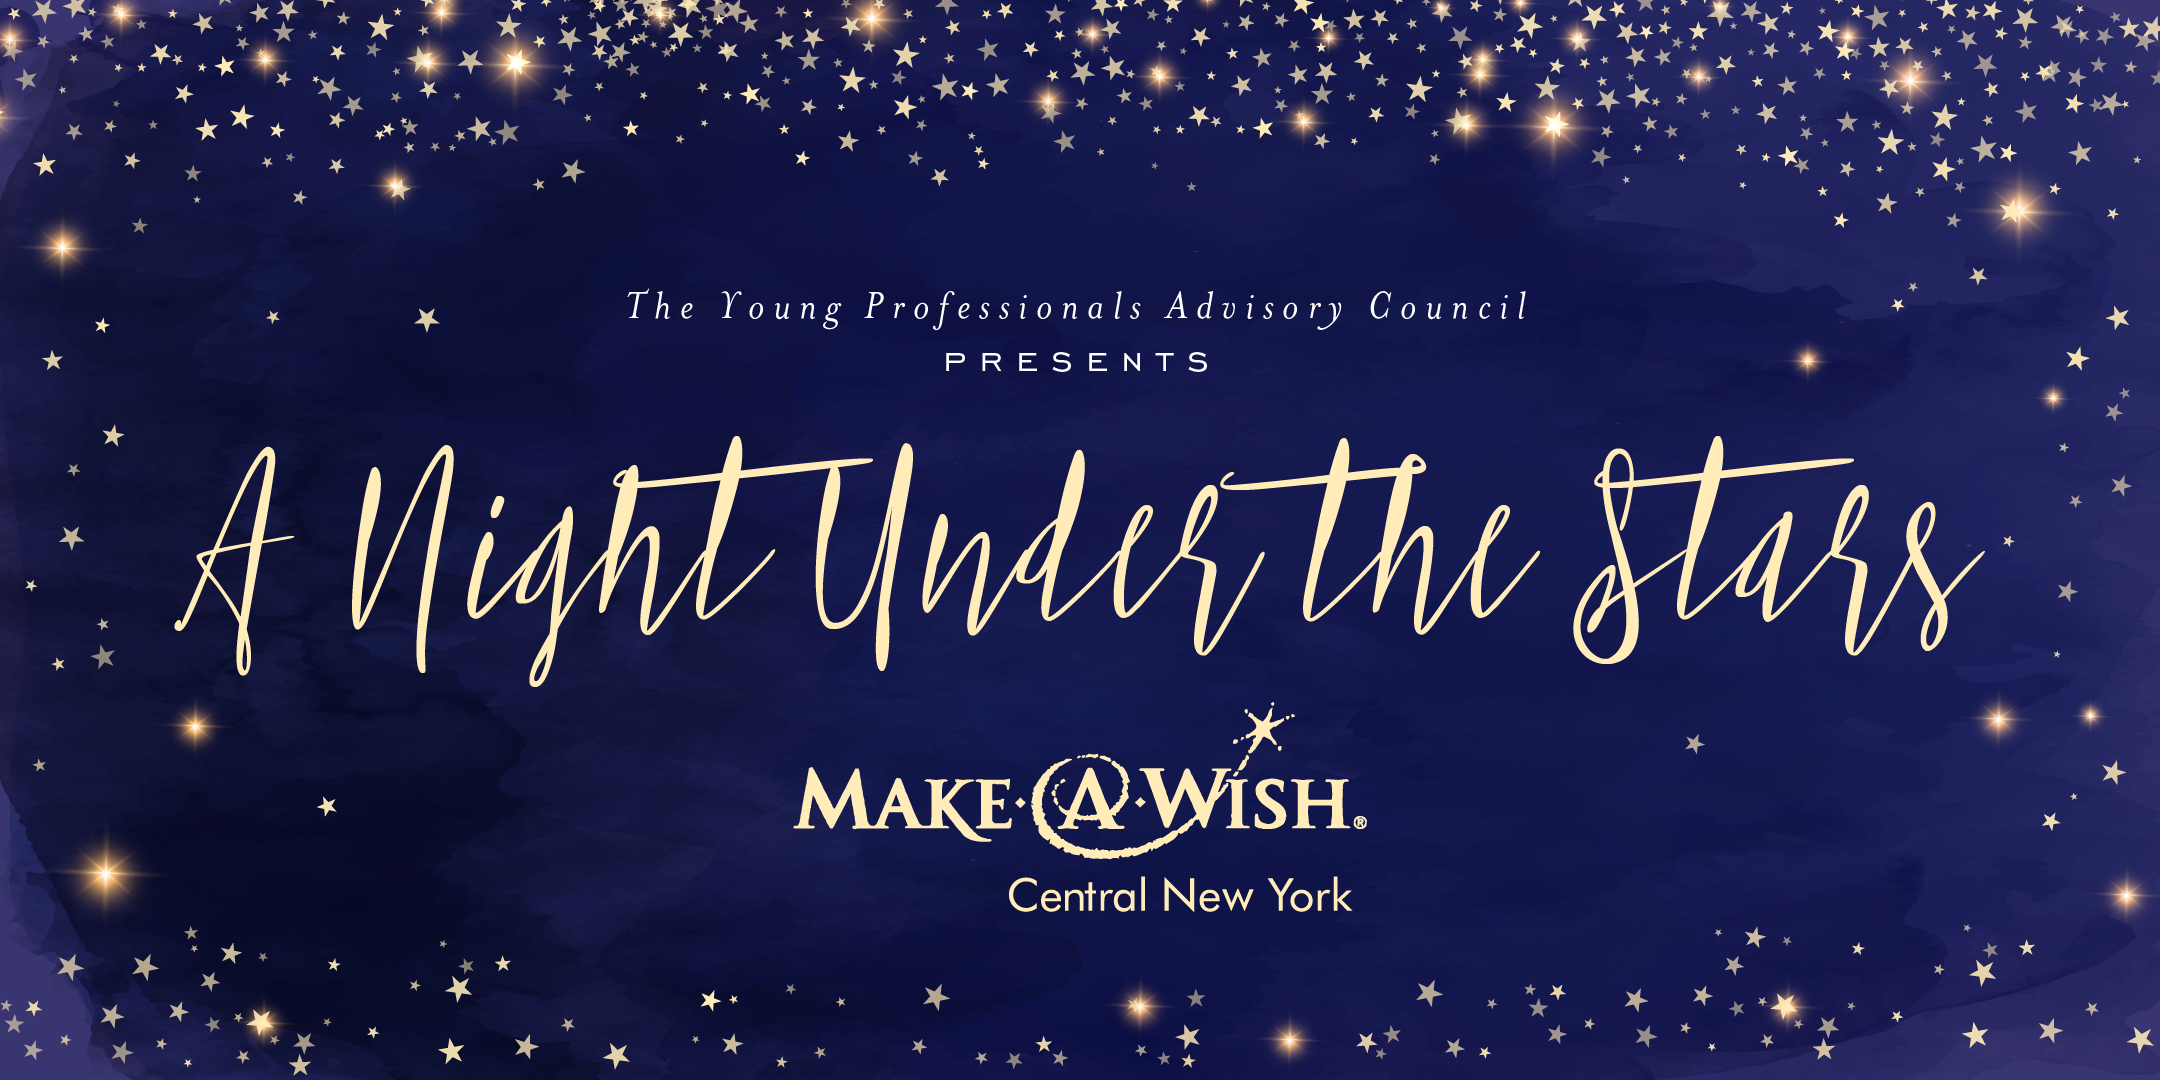 YPAC Night Under the Stars